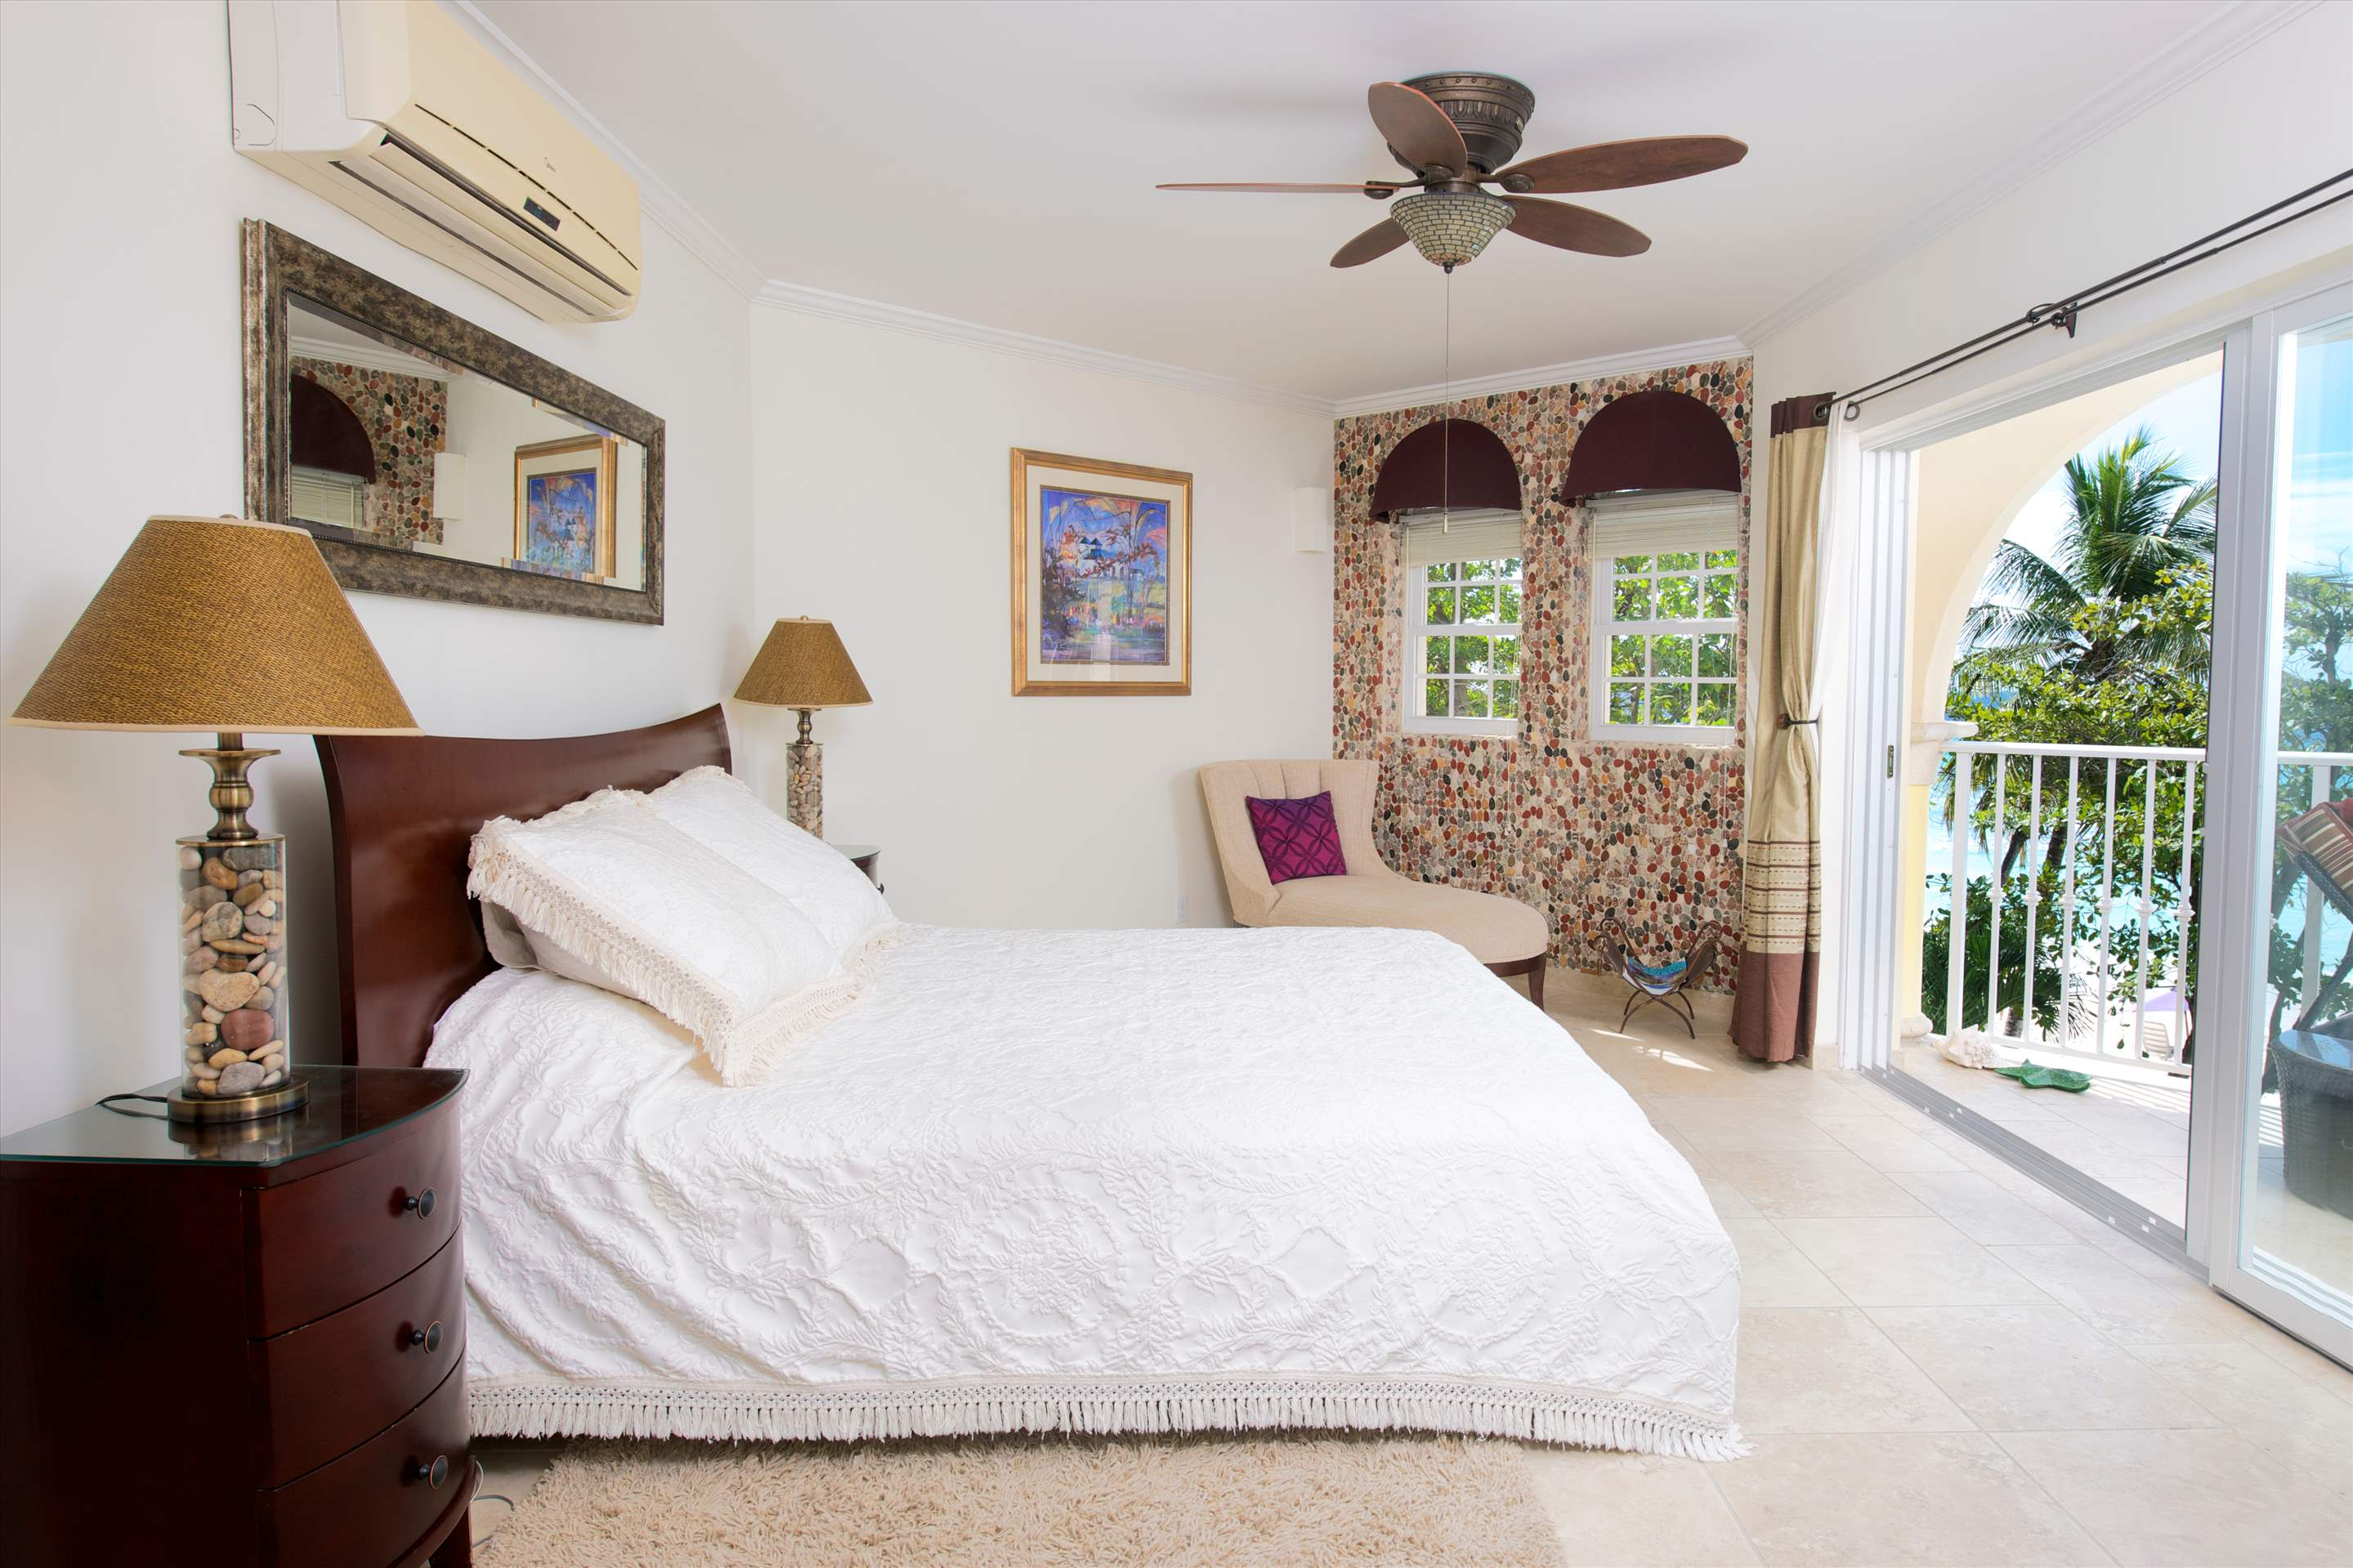 Sapphire Beach 203, 2 bedroom, 3 bedroom apartment in St. Lawrence Gap & South Coast, Barbados Photo #14